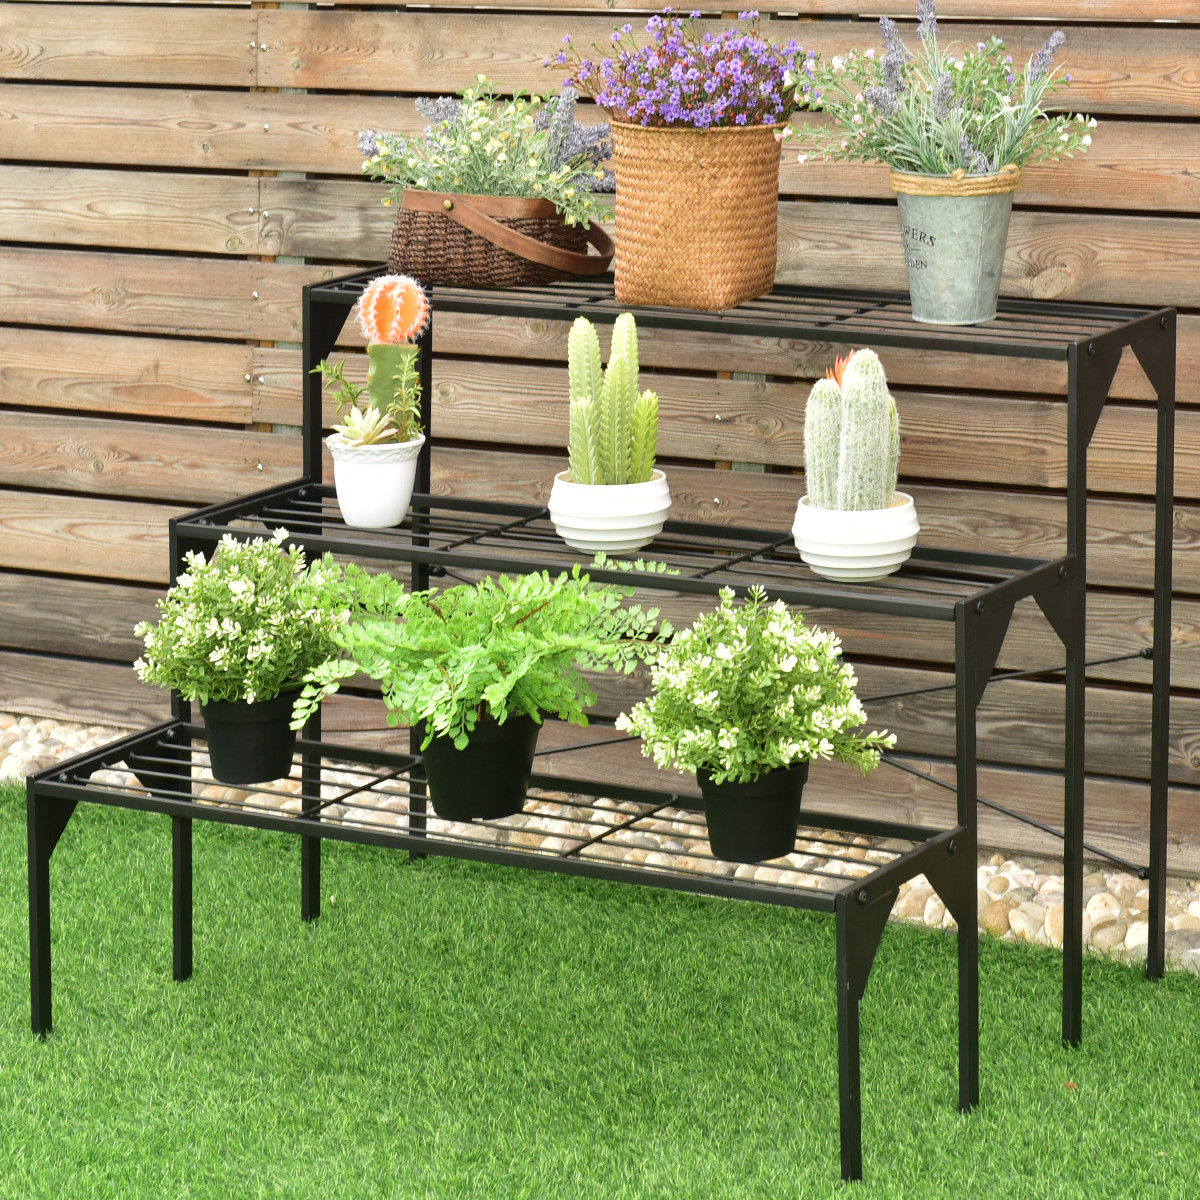 Image of 3 Tier Outdoor Metal Heavy Duty Modern for Multiple Plant Display Stand Rack